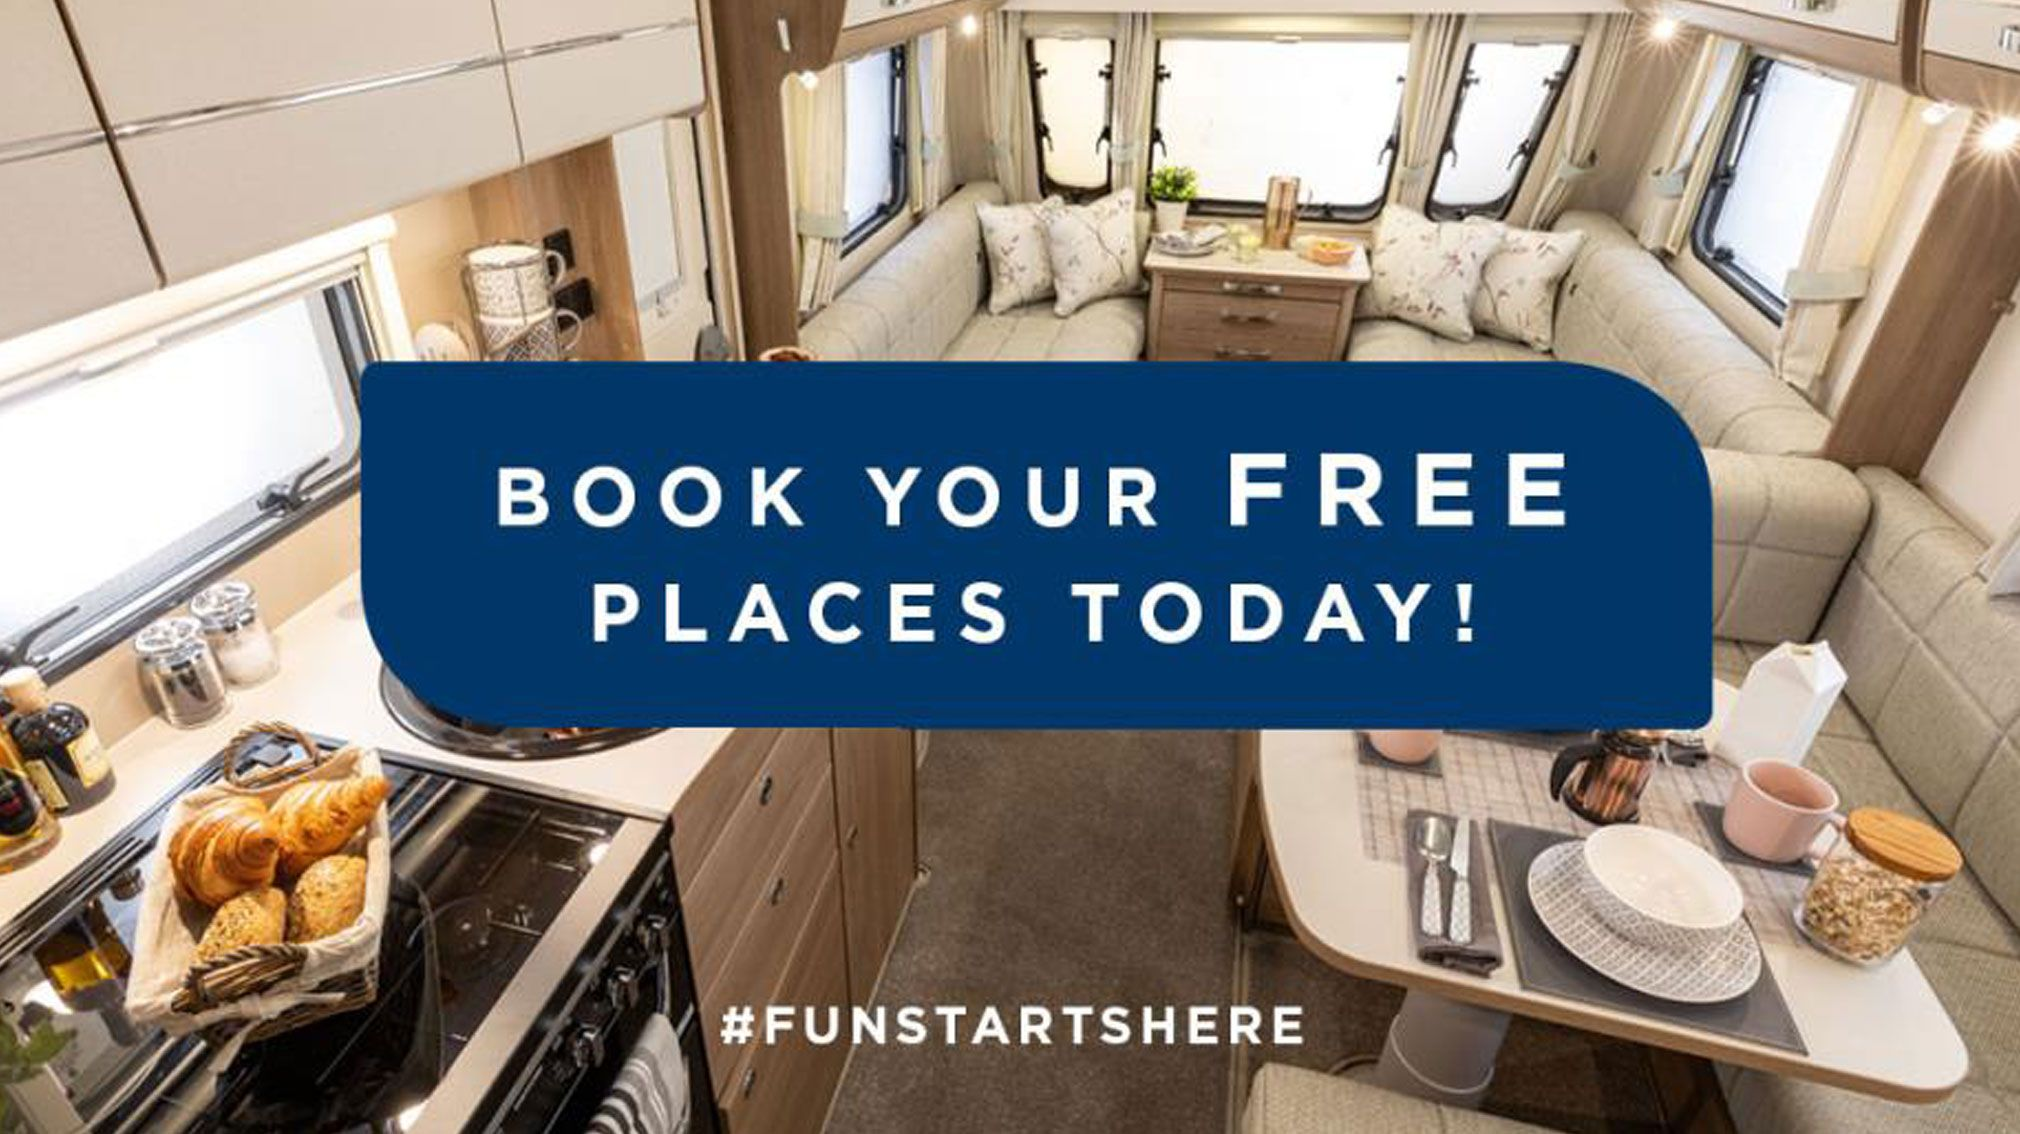 Caravan layout with book your free places today banner